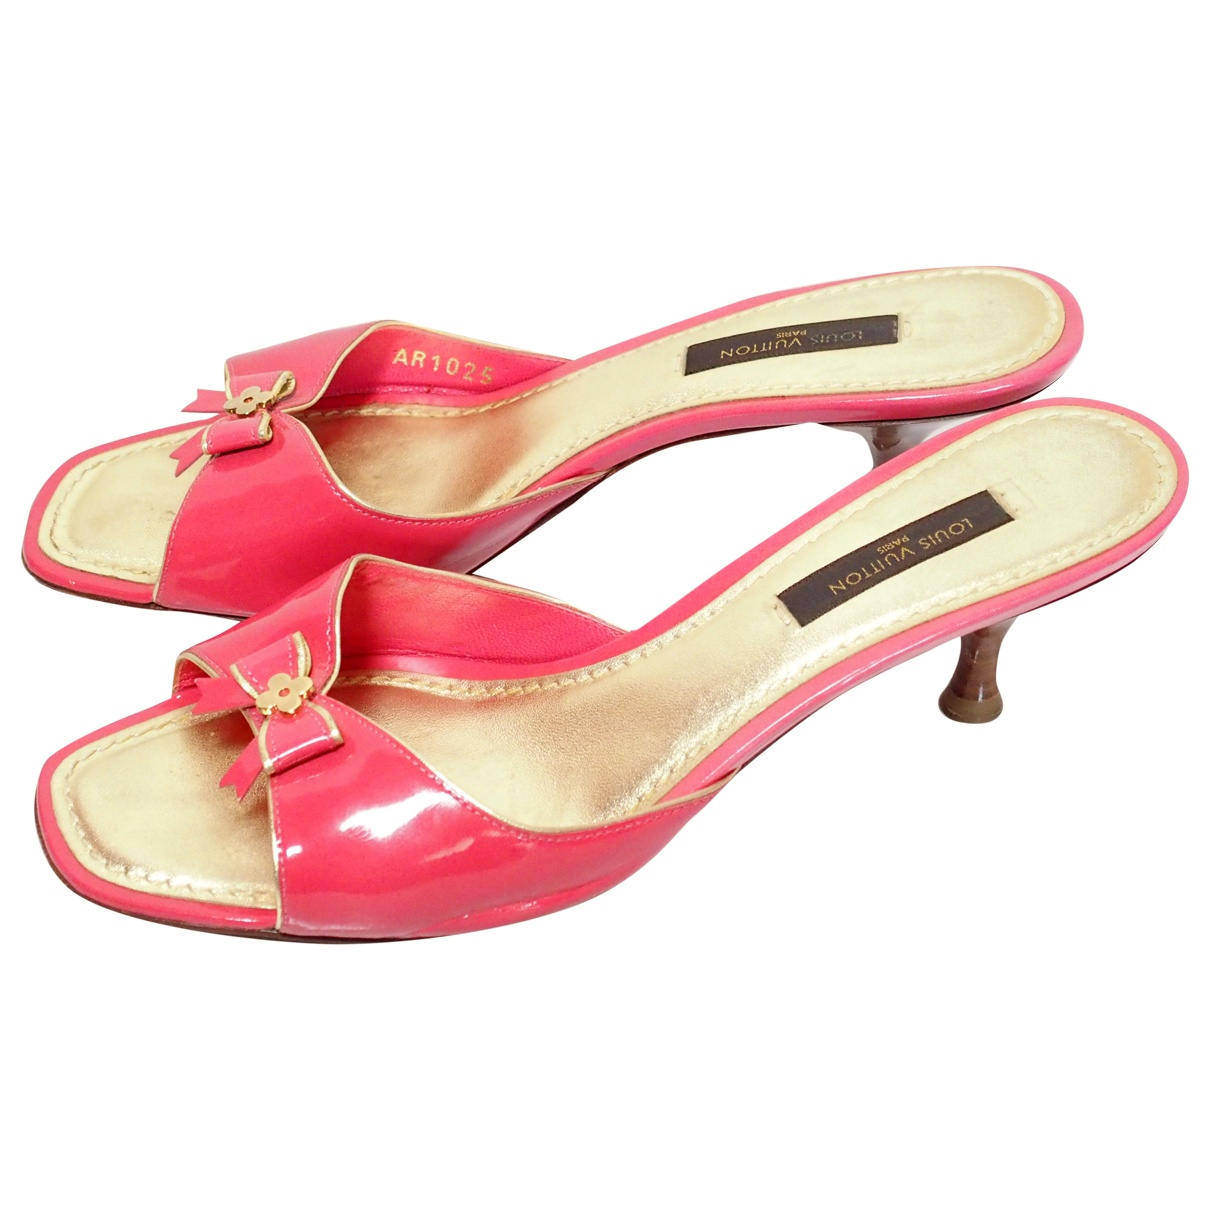 Louis Vuitton \N Pink Patent leather Sandals for Women 36.5 EU